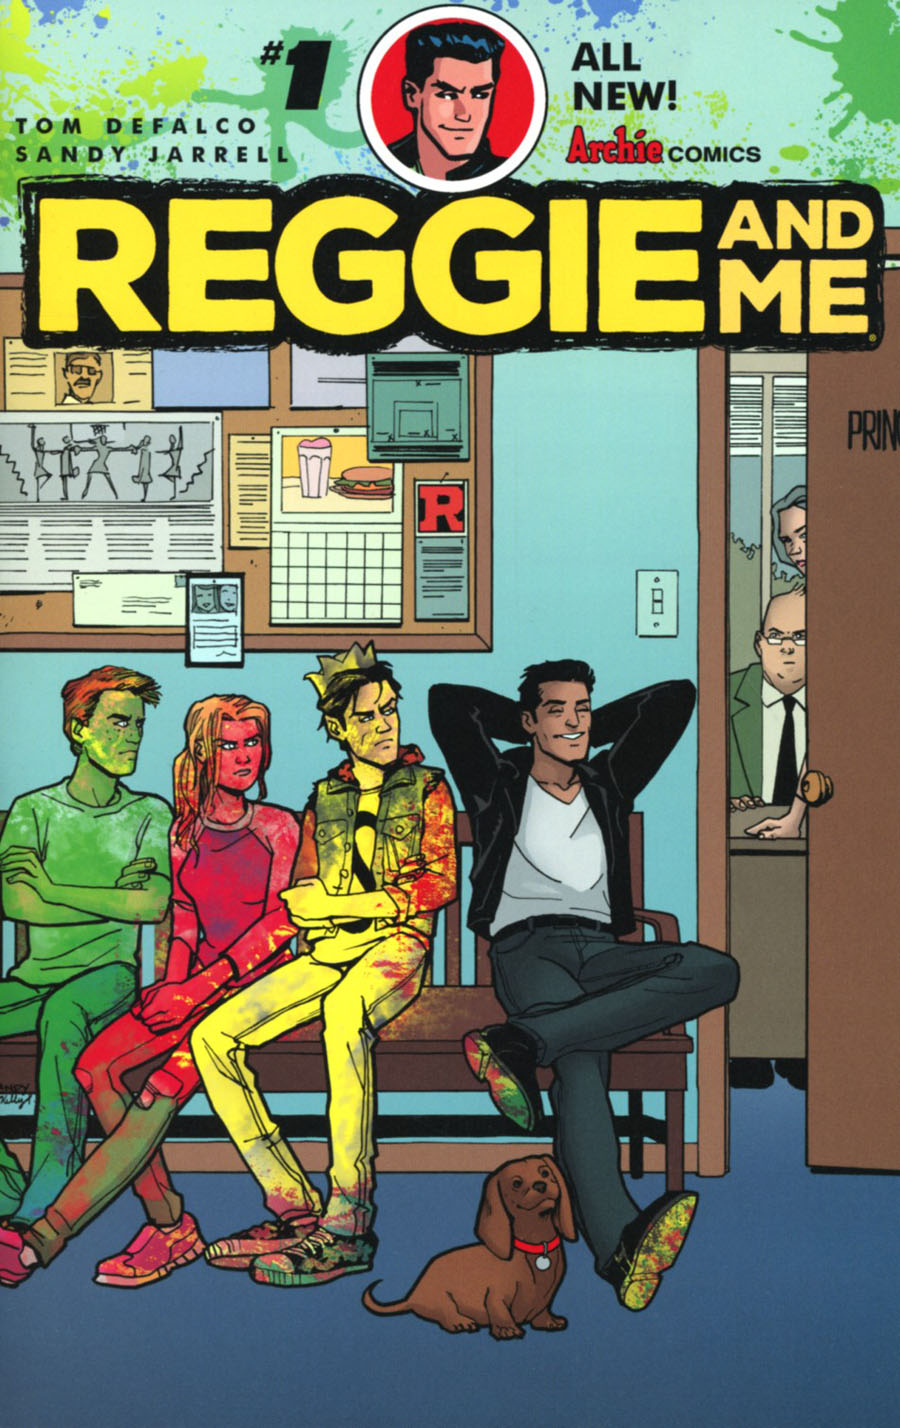 Reggie And Me Vol 2 #1 Cover A Regular Sandy Jarrell Cover